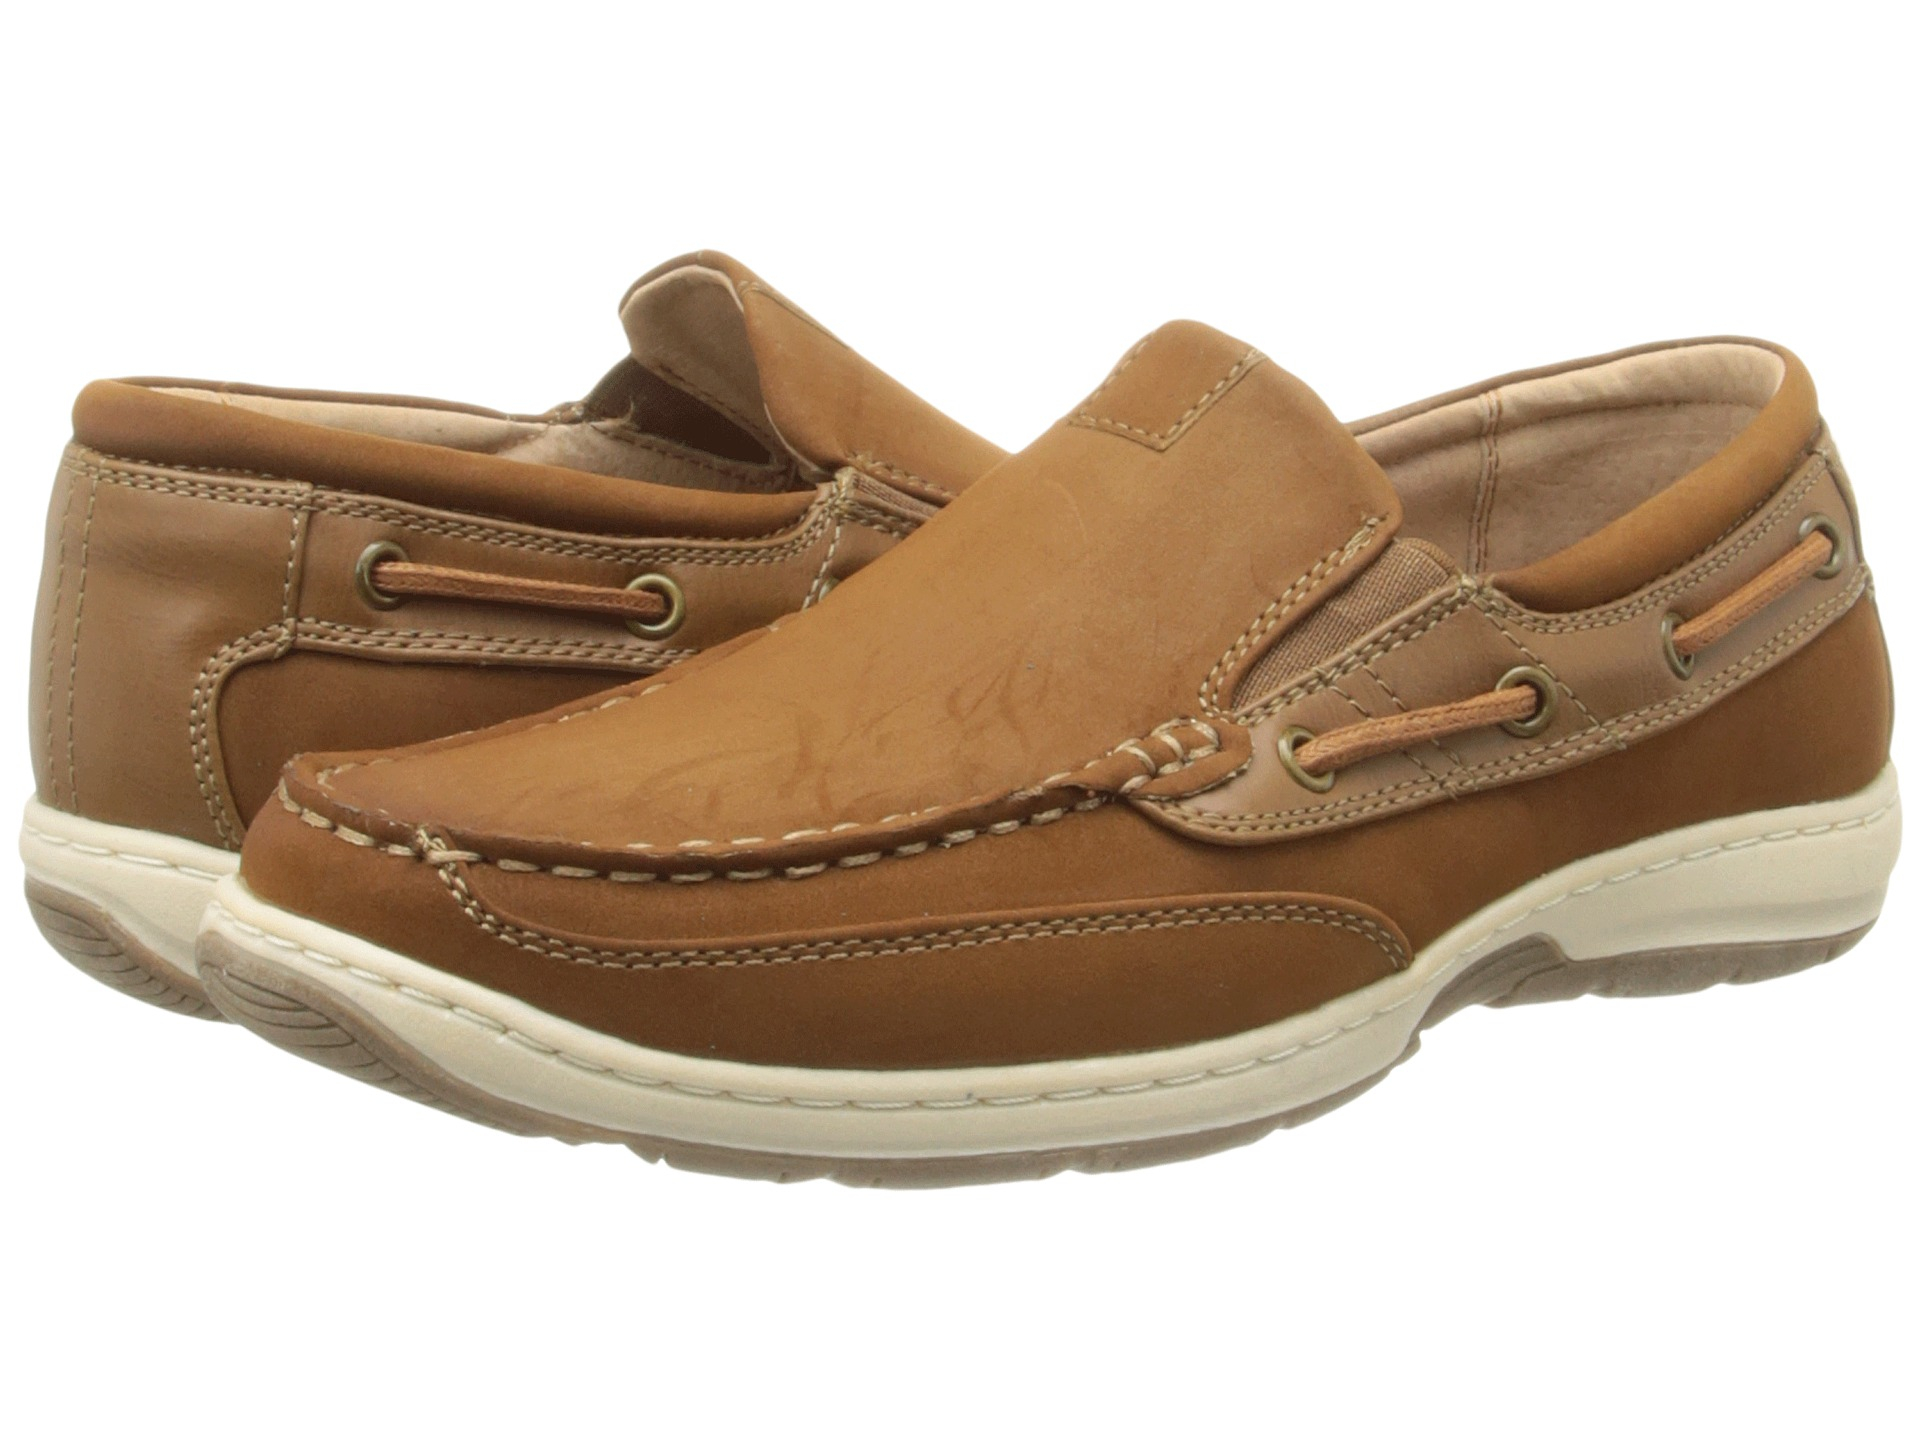 Lyst Nunn Bush Outboard Moc Toe Slip On Boat Shoe In